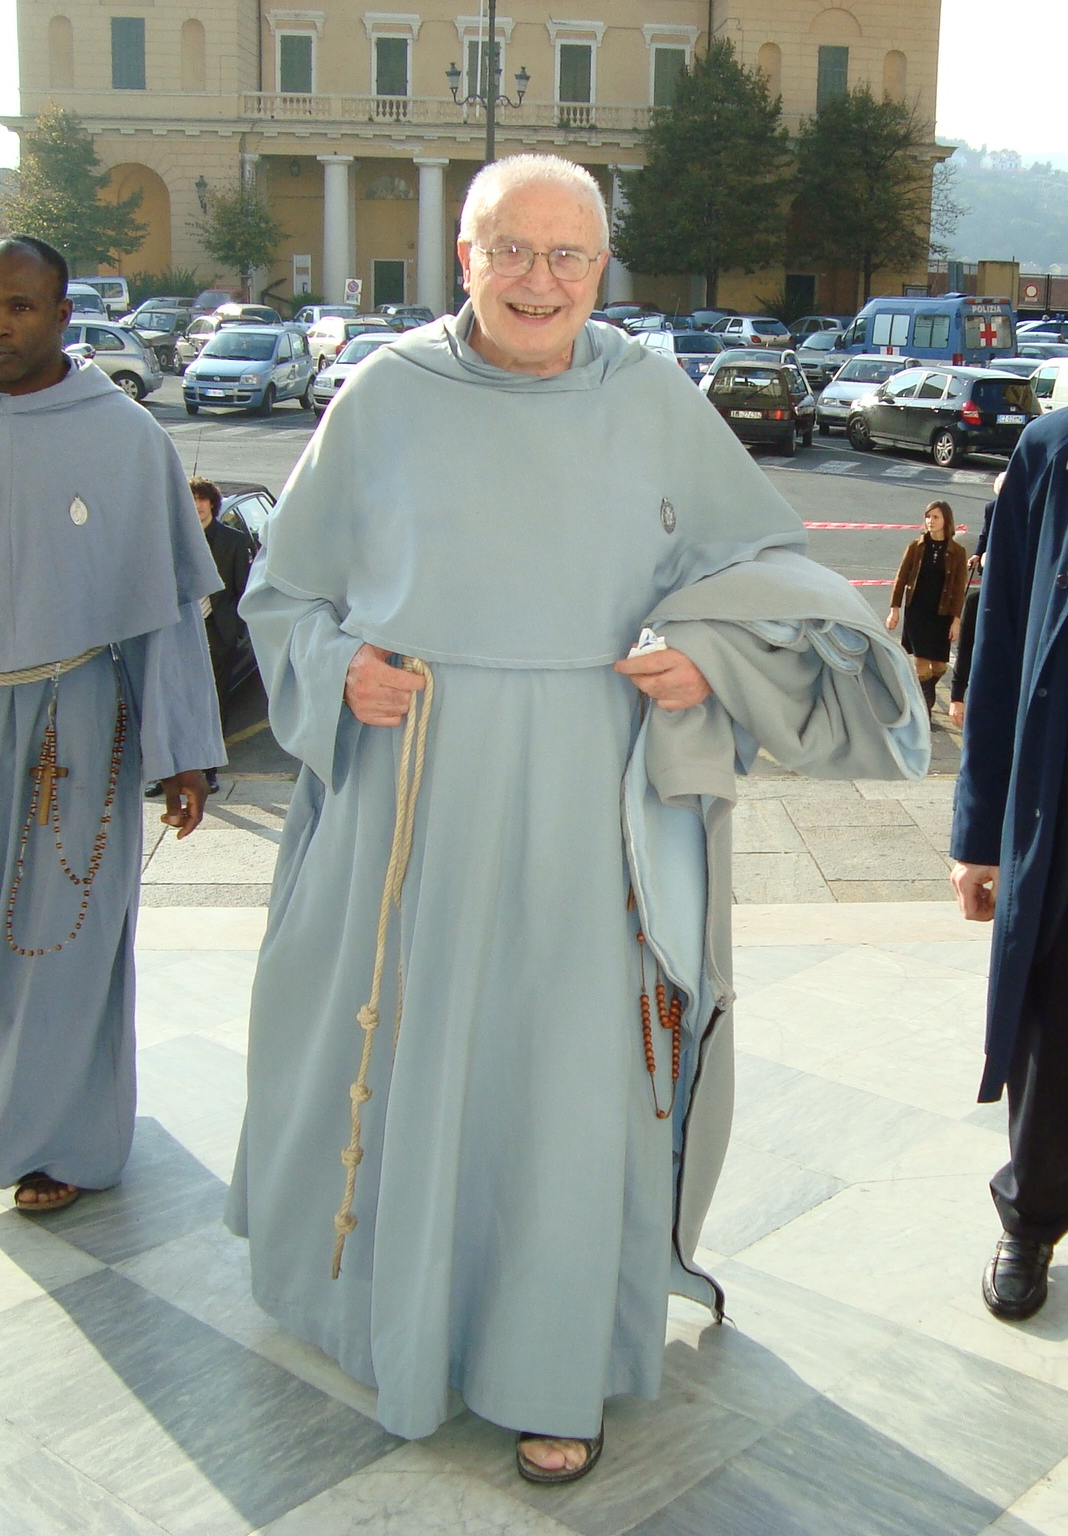 https://veneremurcernui.files.wordpress.com/2014/03/padre-stefano.jpg